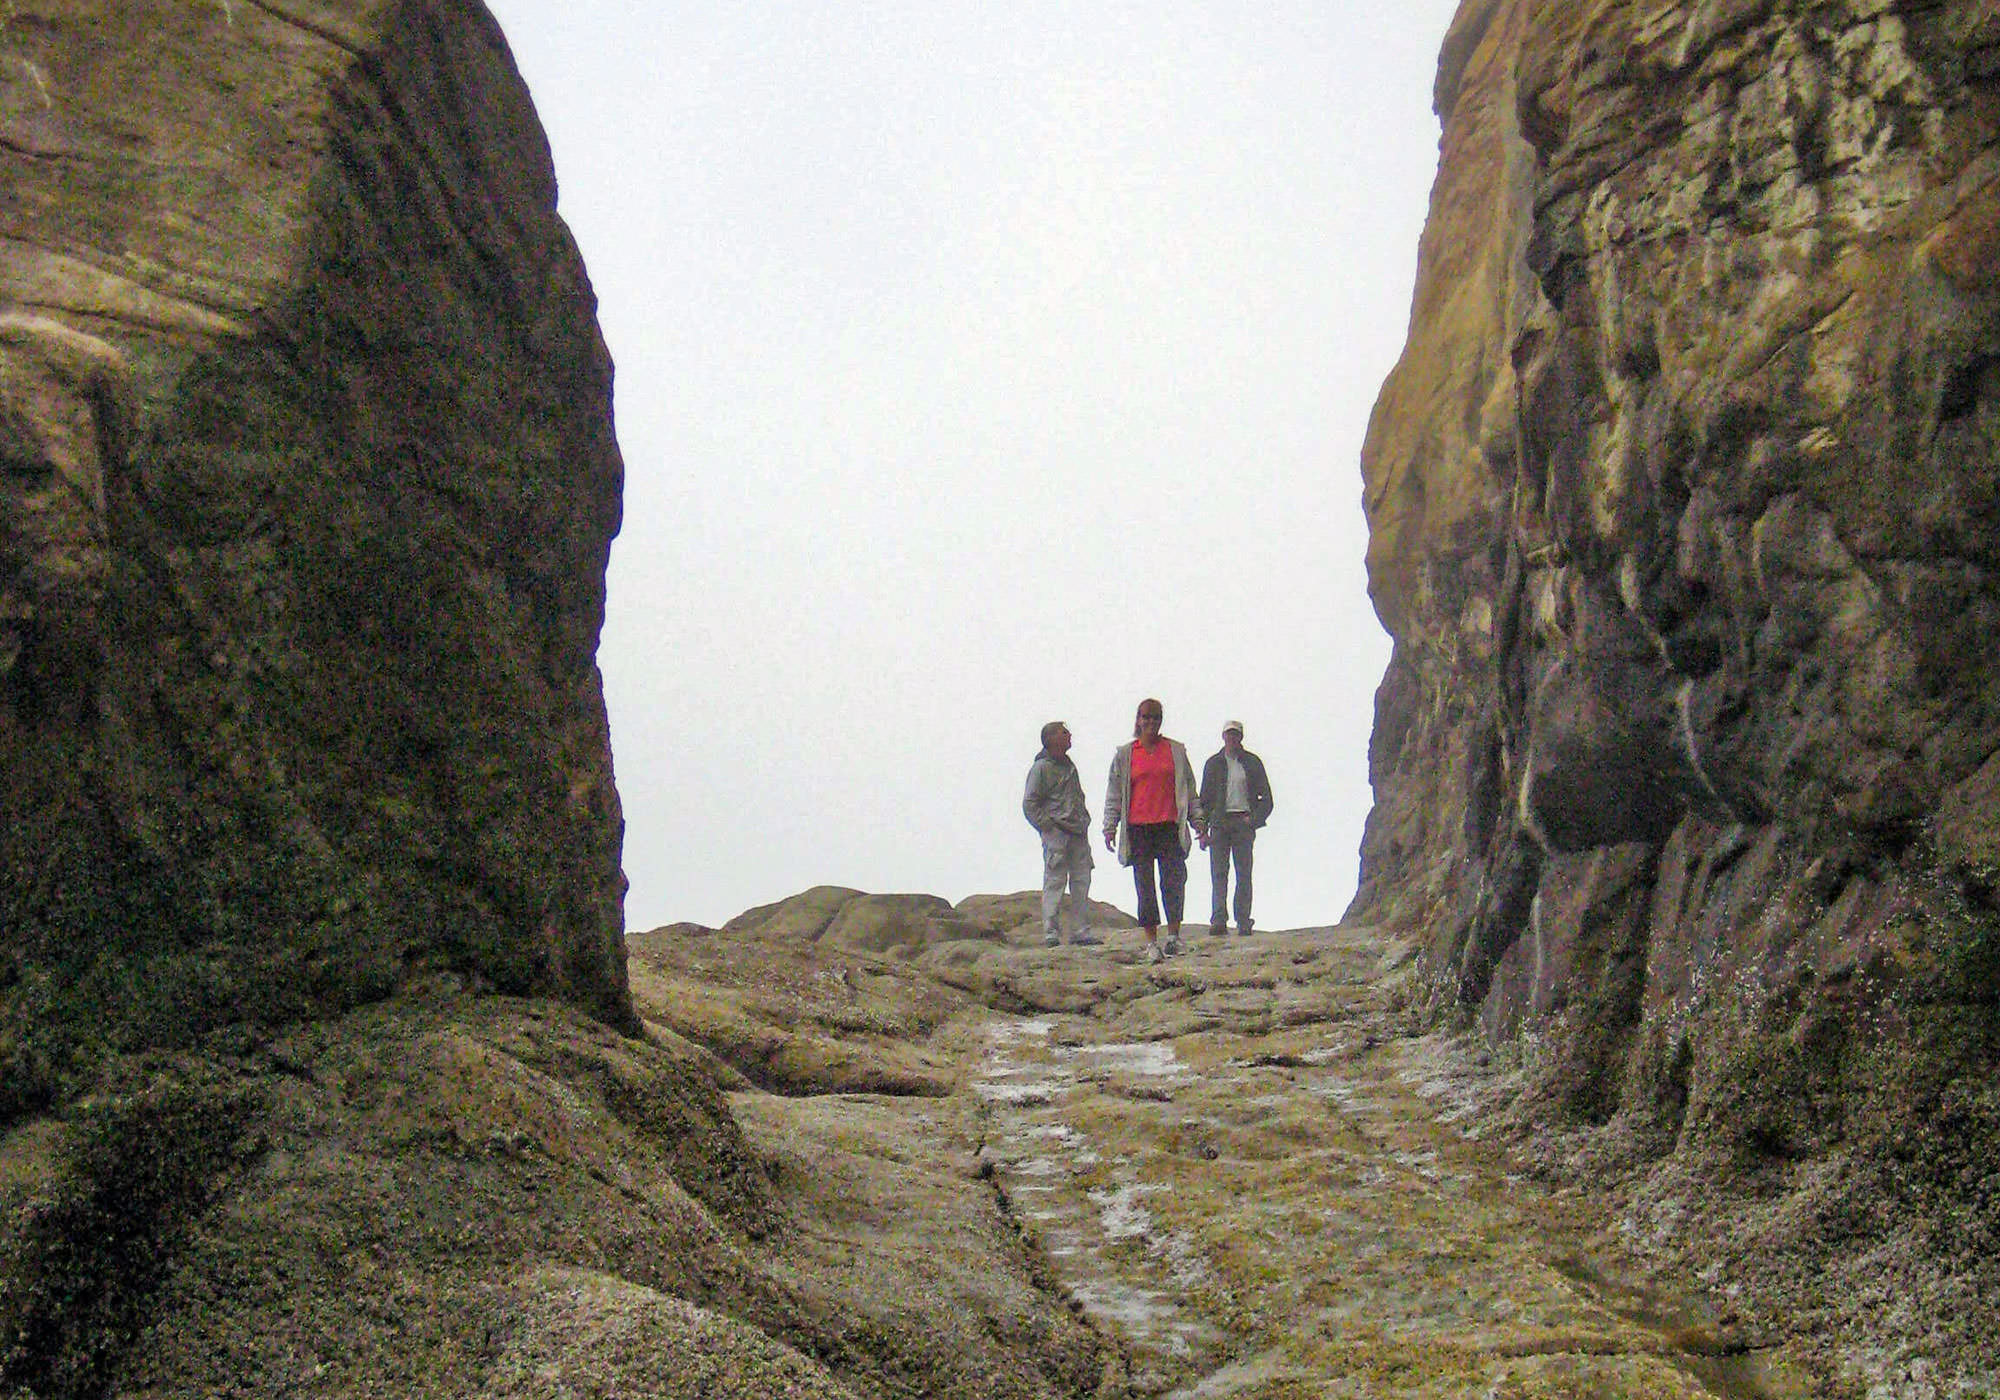 Three people stand on the former stagecoach road carved into rock.